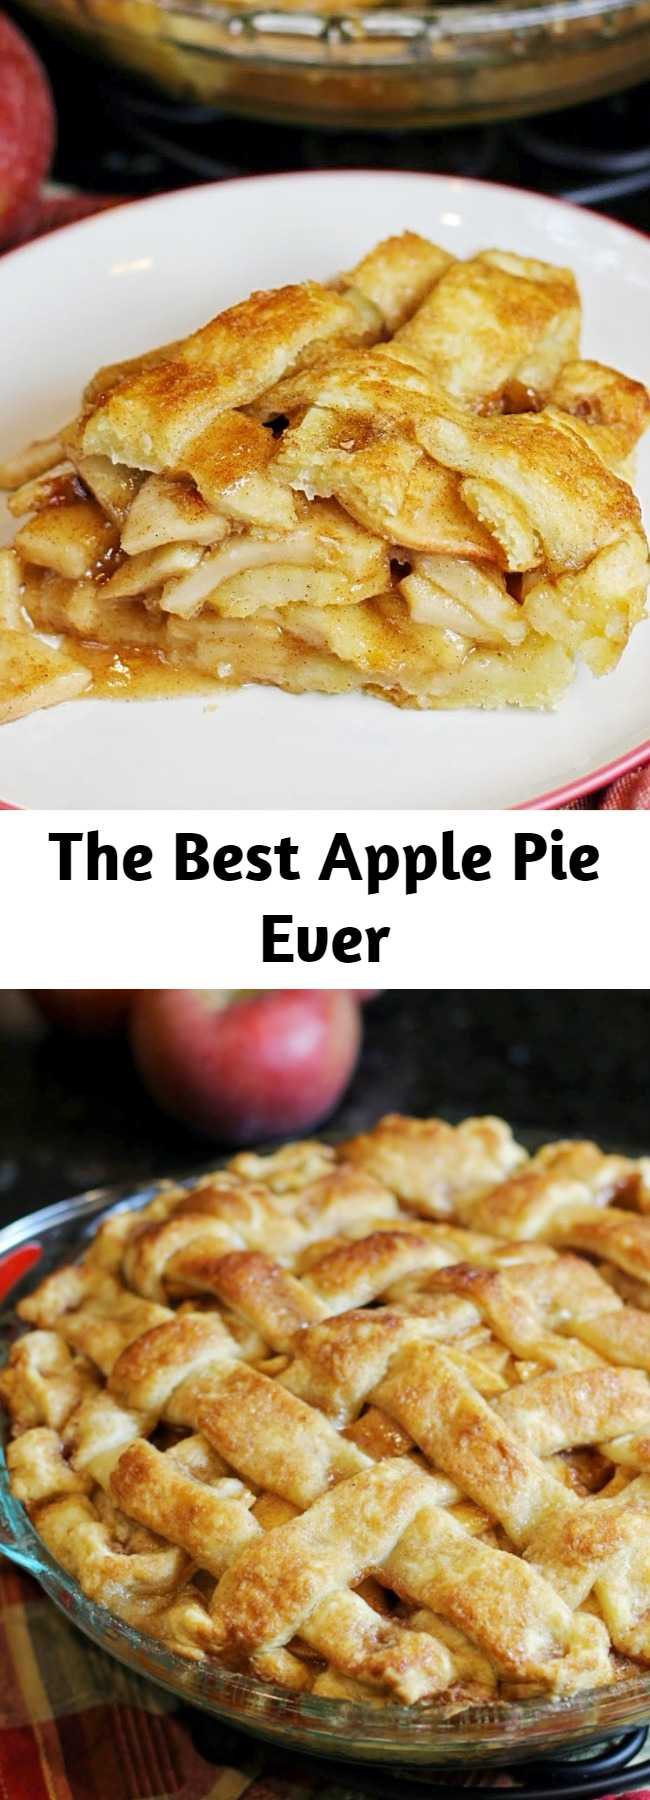 The Best Apple Pie Ever - So, what makes this apple pie so special? Let's take a look at some key ingredients. The type of apple you use does make a difference. I use granny smith, but I've successfully made it with other varieties. As long as you choose a hard, tart apple, the end result will be delicious.